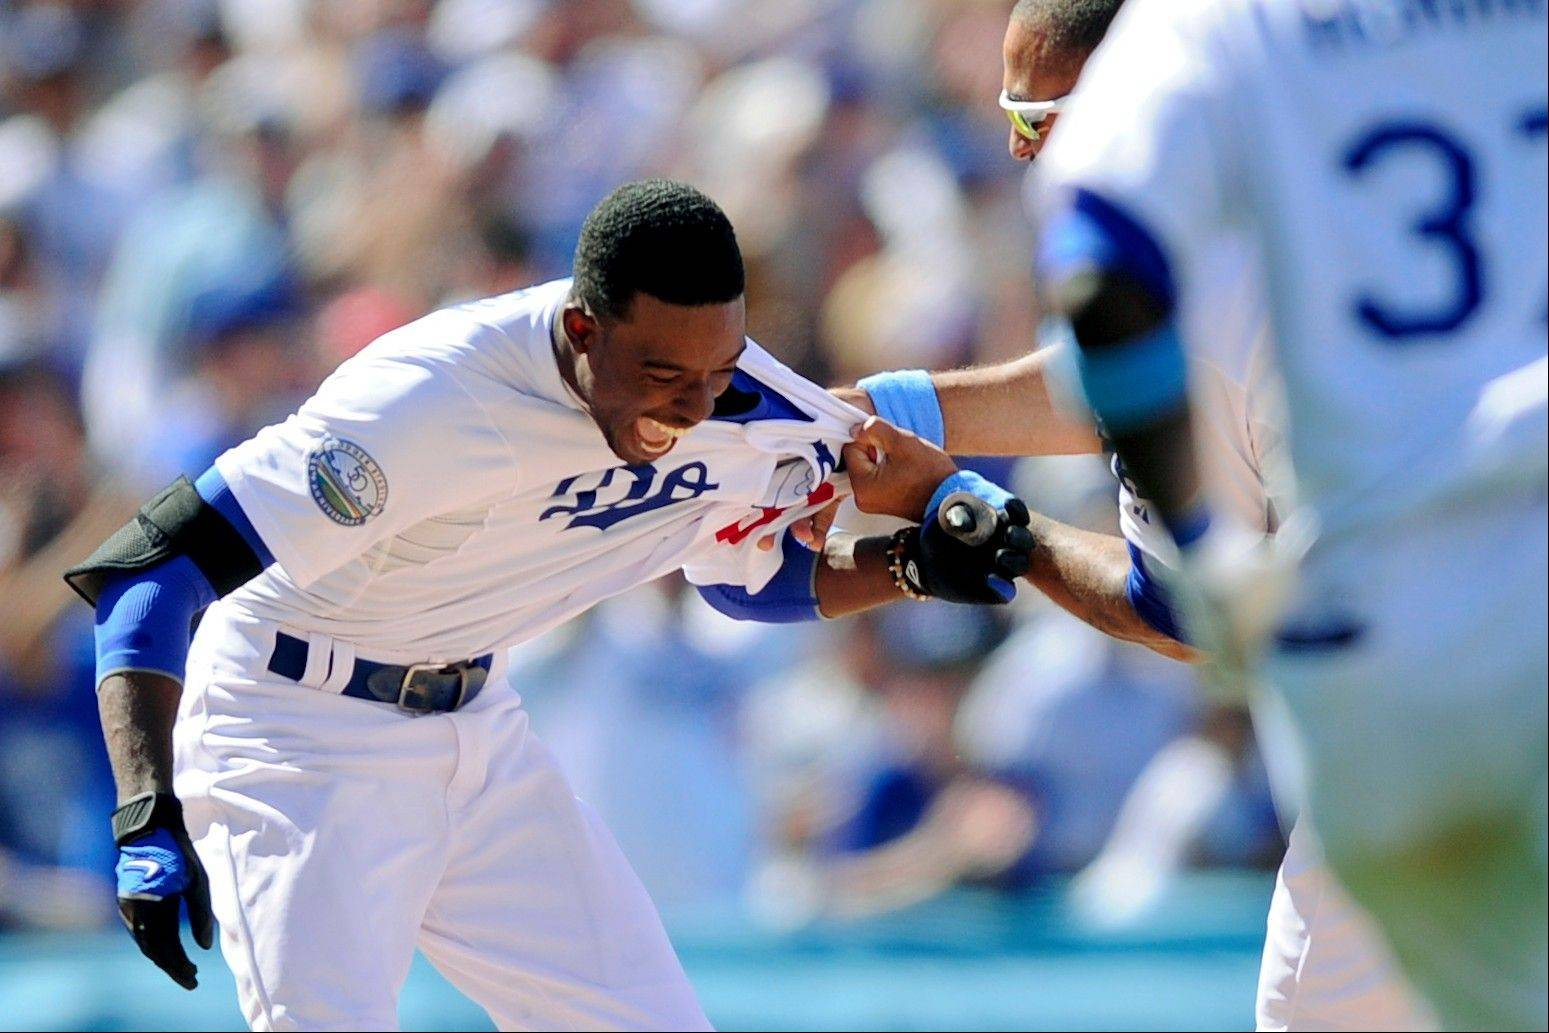 The Los Angeles Dodgers' Dee Gordon celebrates with teammates Sunday after he driving in the winning run in the 10th inning against the White Sox.